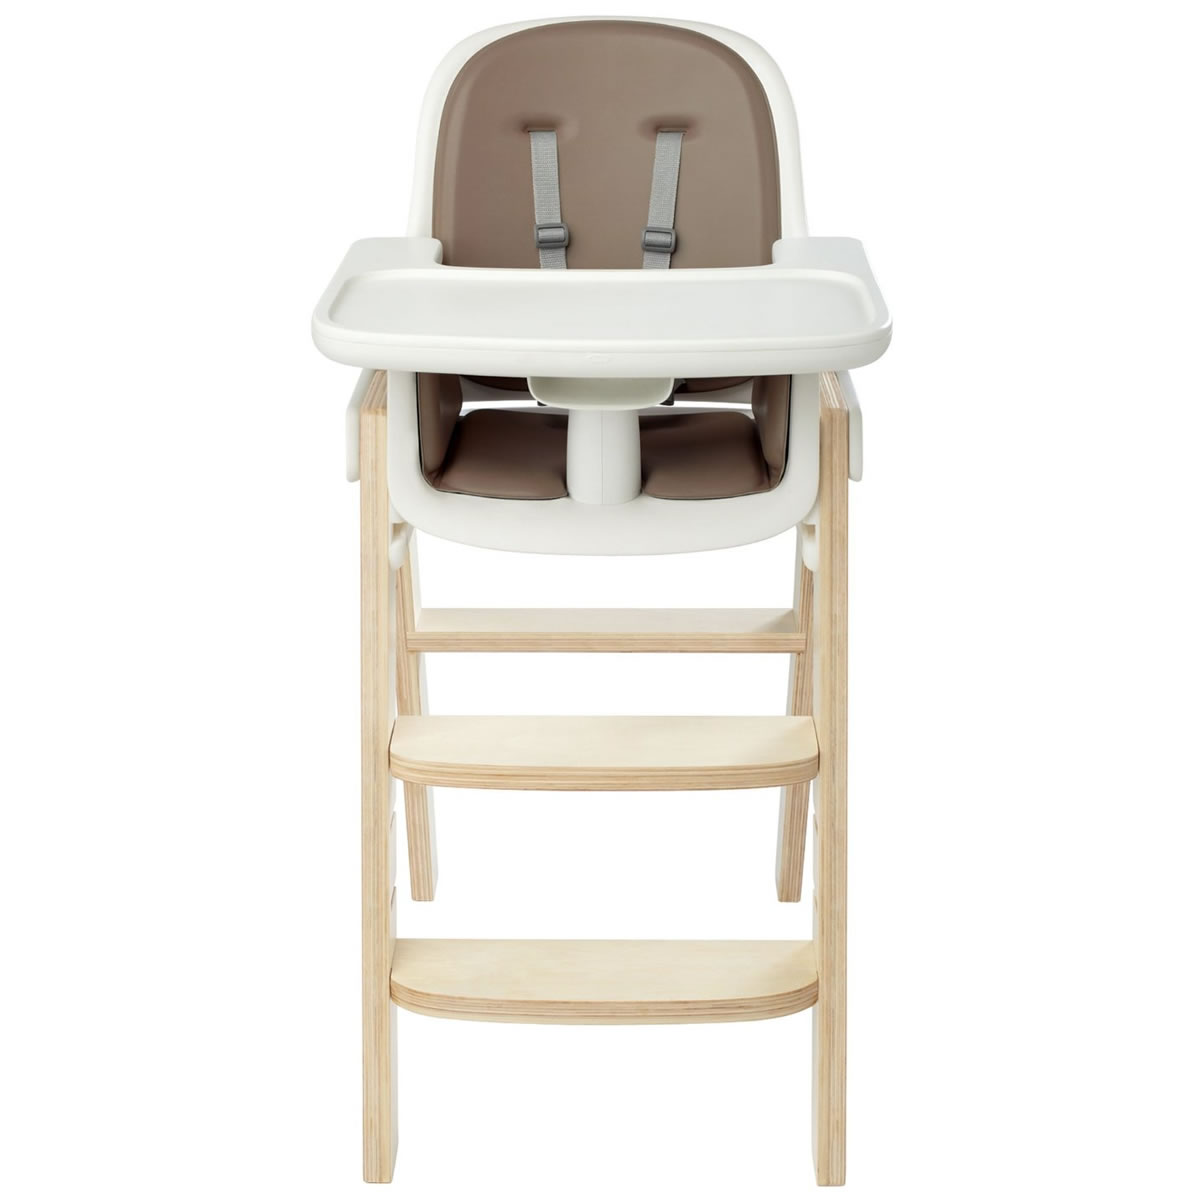 albee baby high chair makeup oxo tot sprout taupe birch